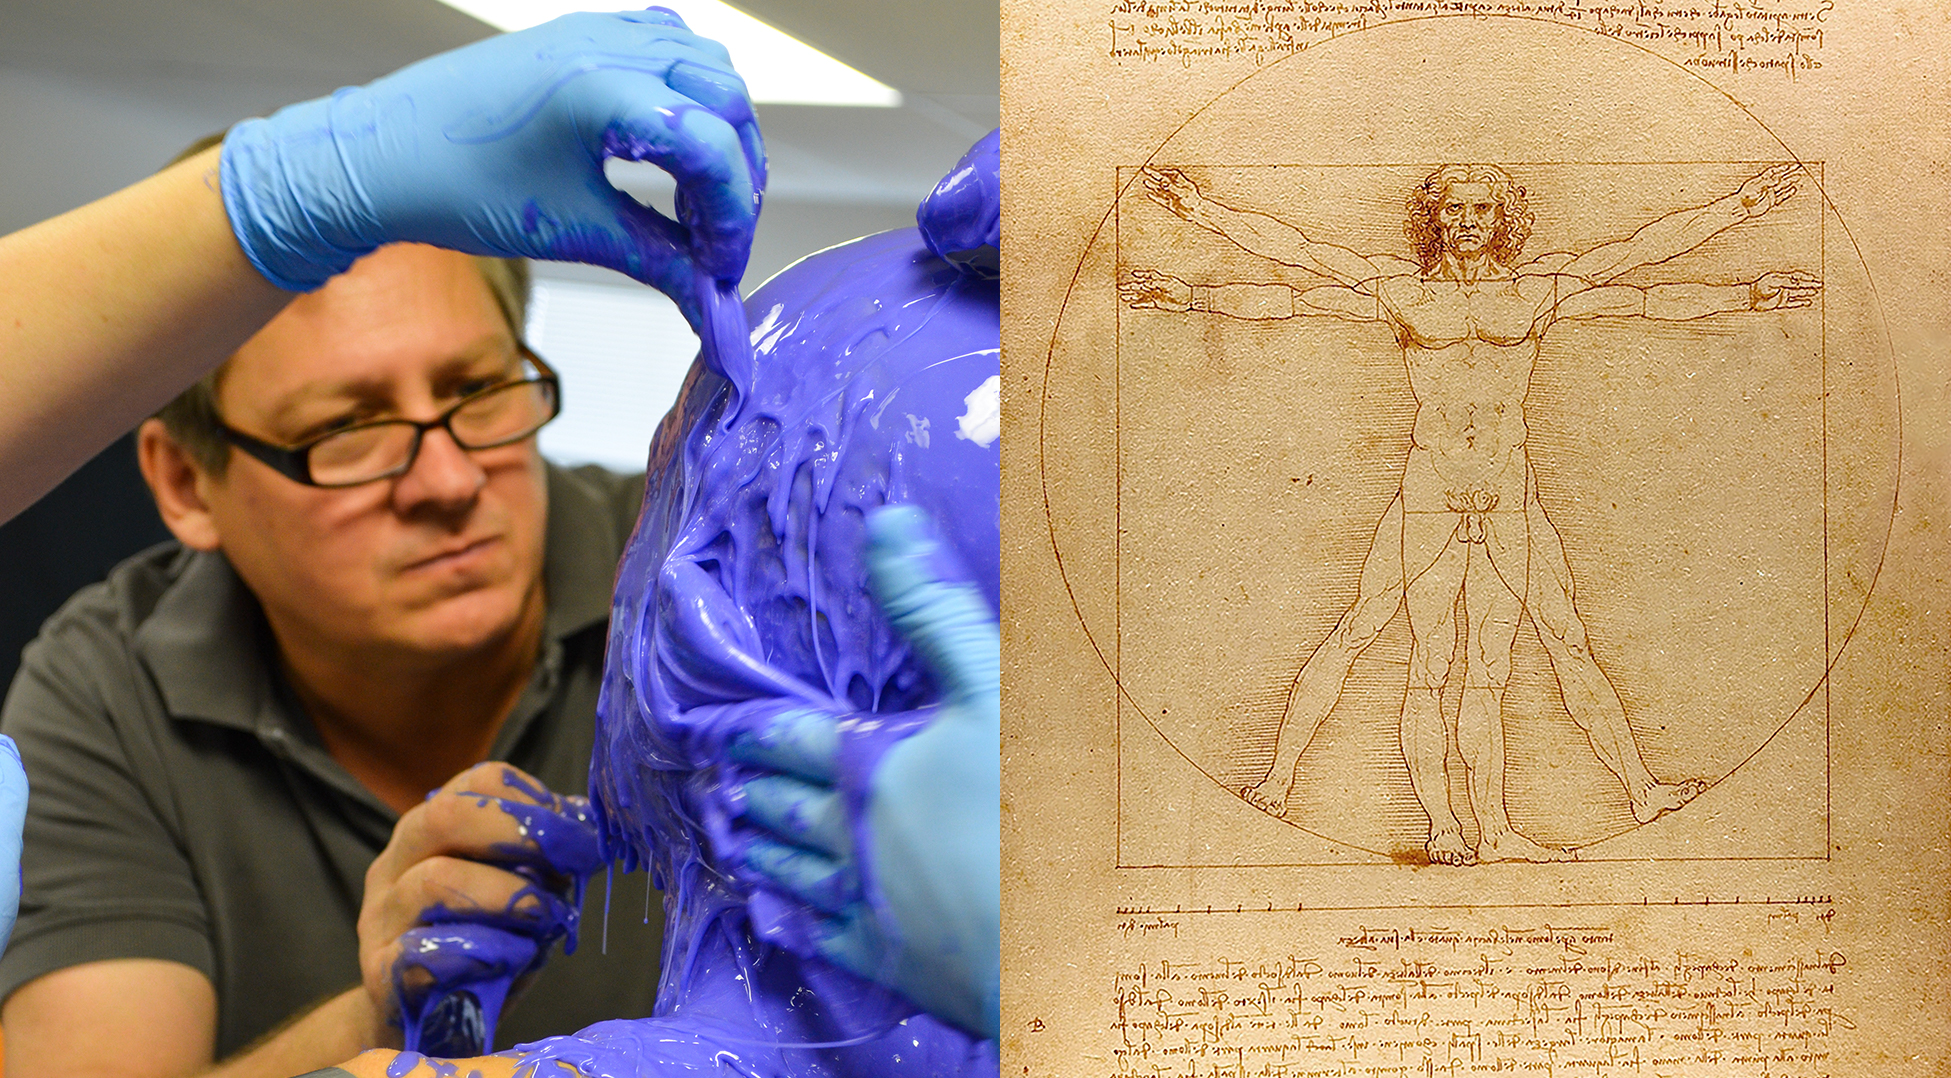 SIMETRI's Barry Anderson juxtaposed with Leonardo Da Vinci's Vitruvian Man